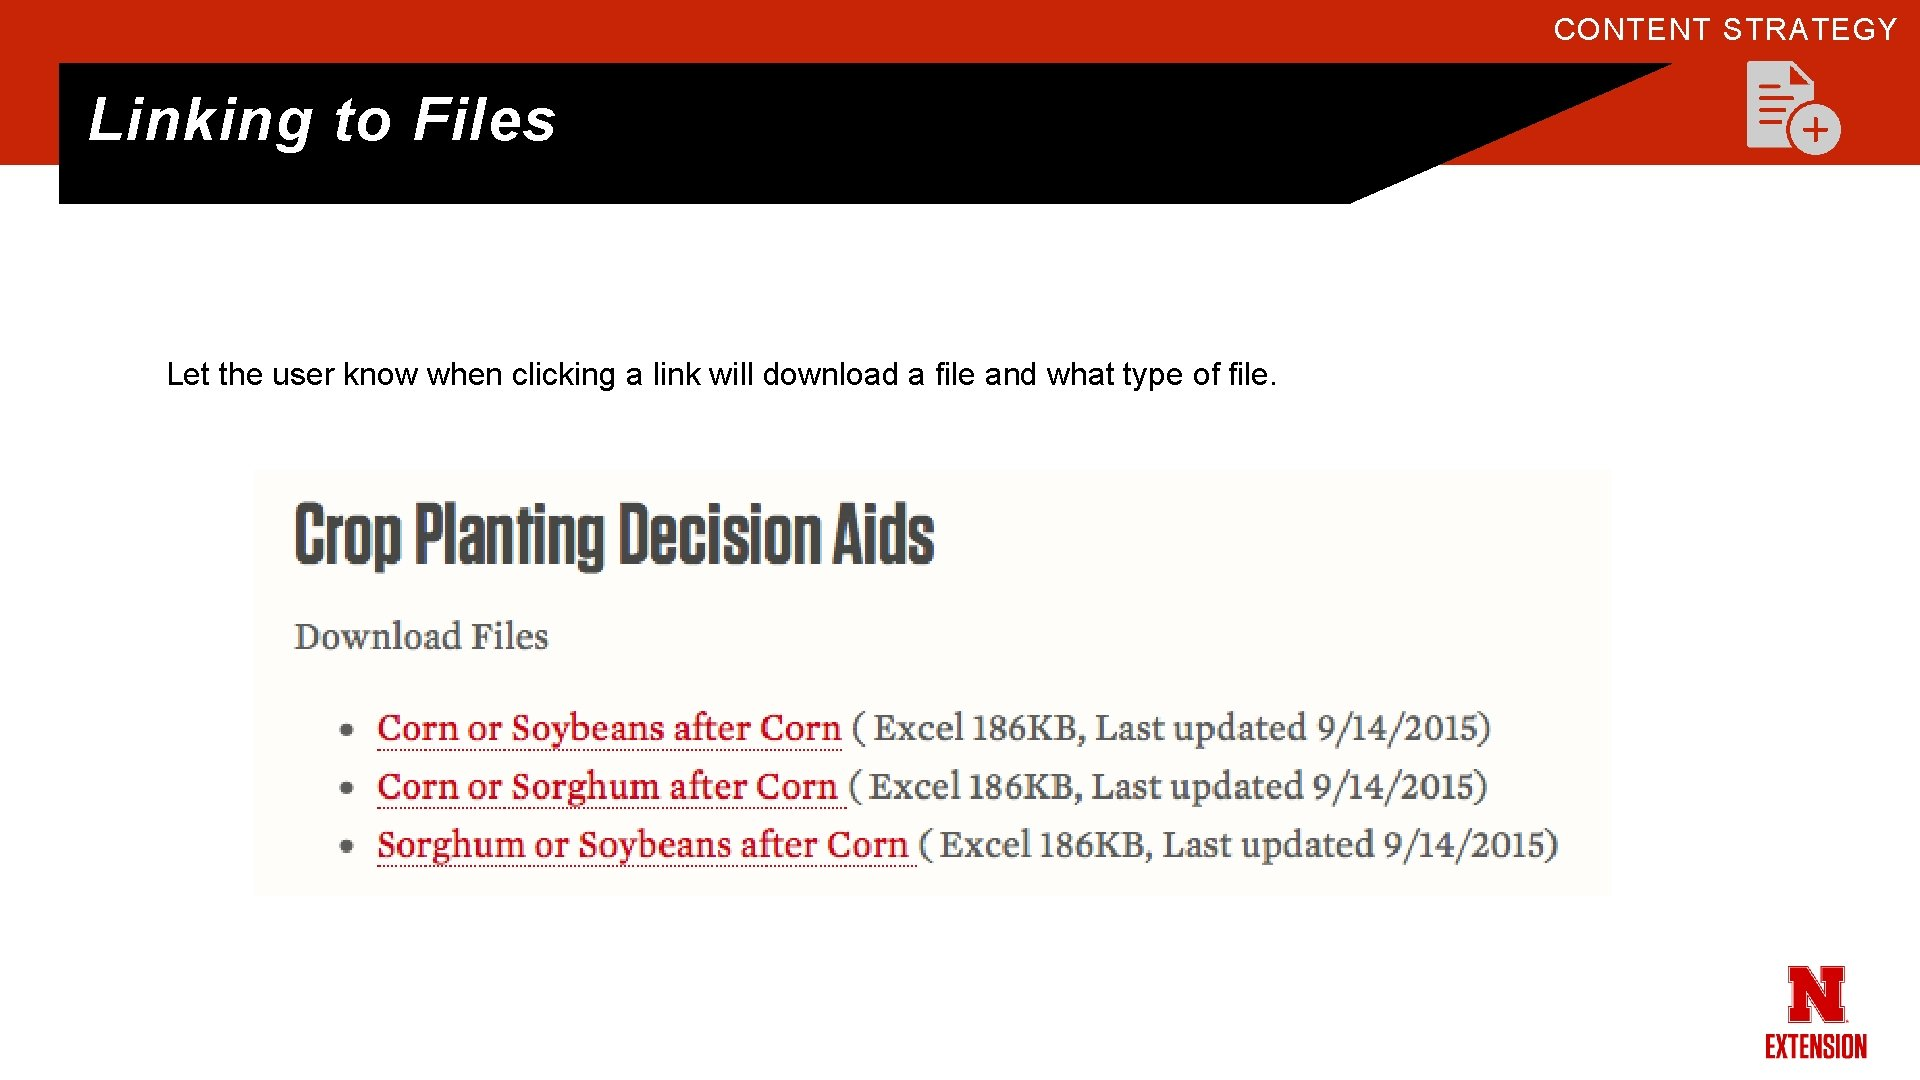 CONTENT STRATEGY Linking to Files Let the user know when clicking a link will